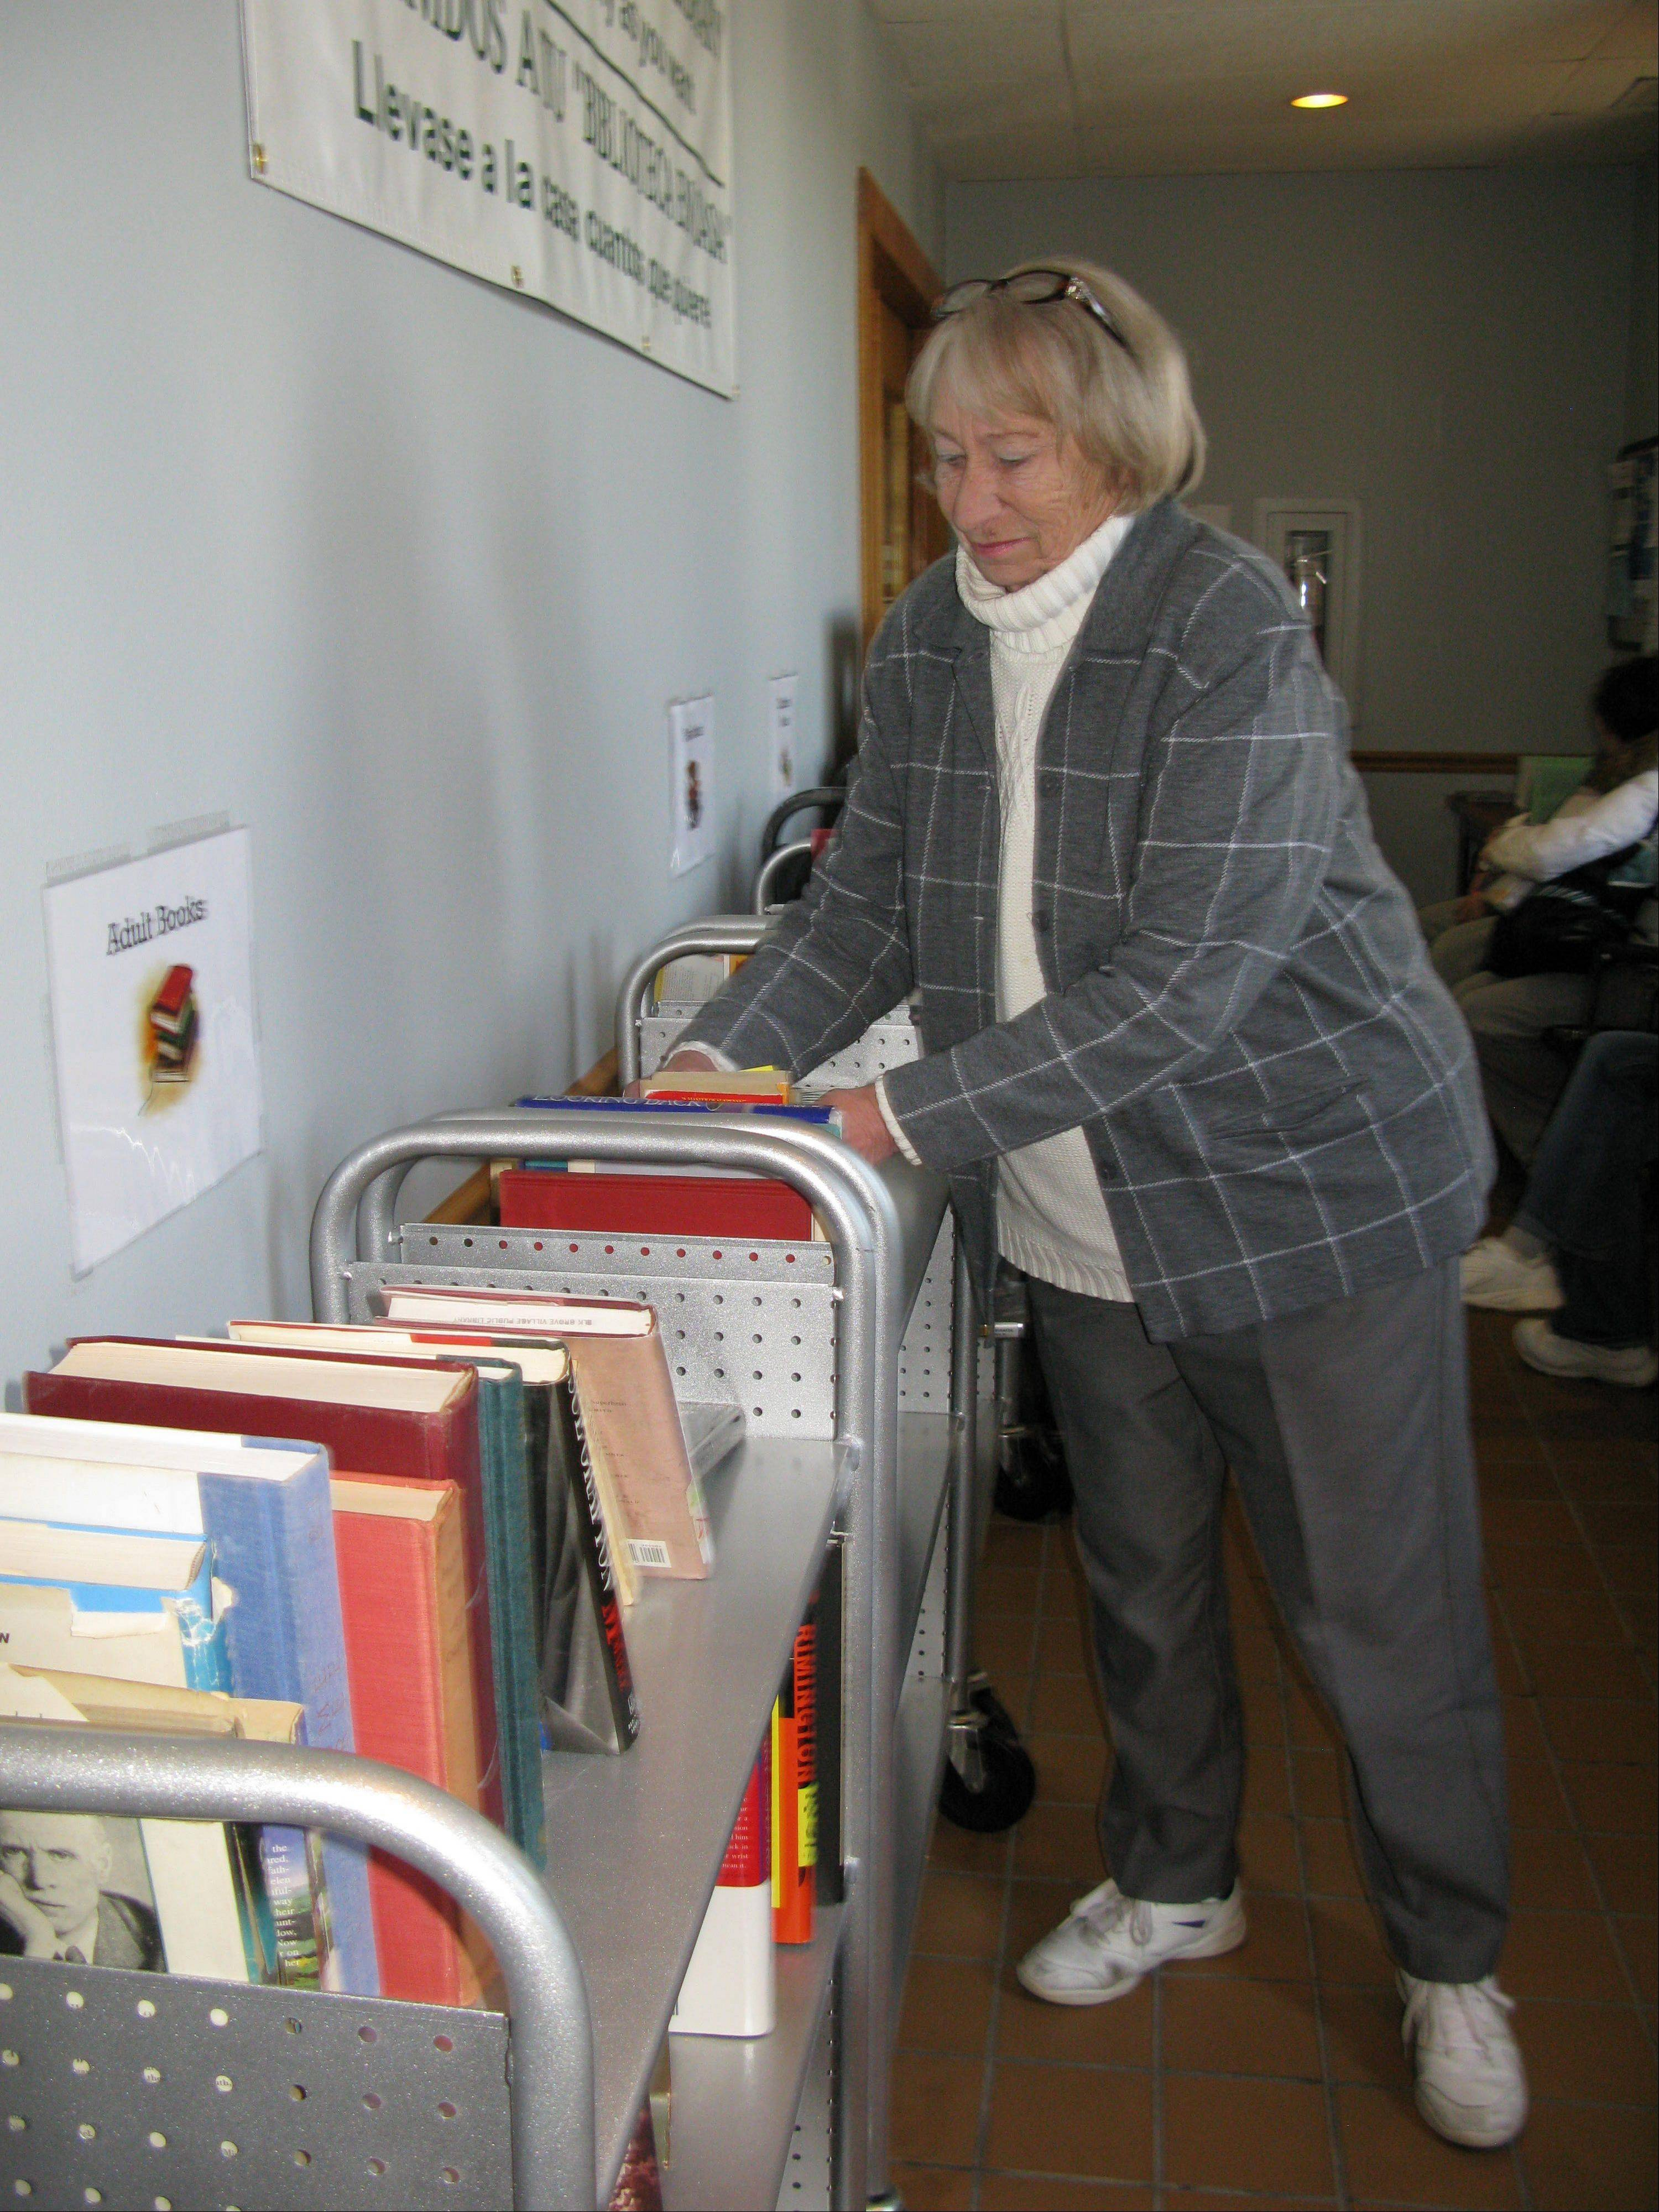 Elk Grove Township Supervisor Nanci Vanderweel is retiring this April after nearly 28 years with the township. Vanderweel started a free library which earned the township a Governor's Home Town Award in 2008.